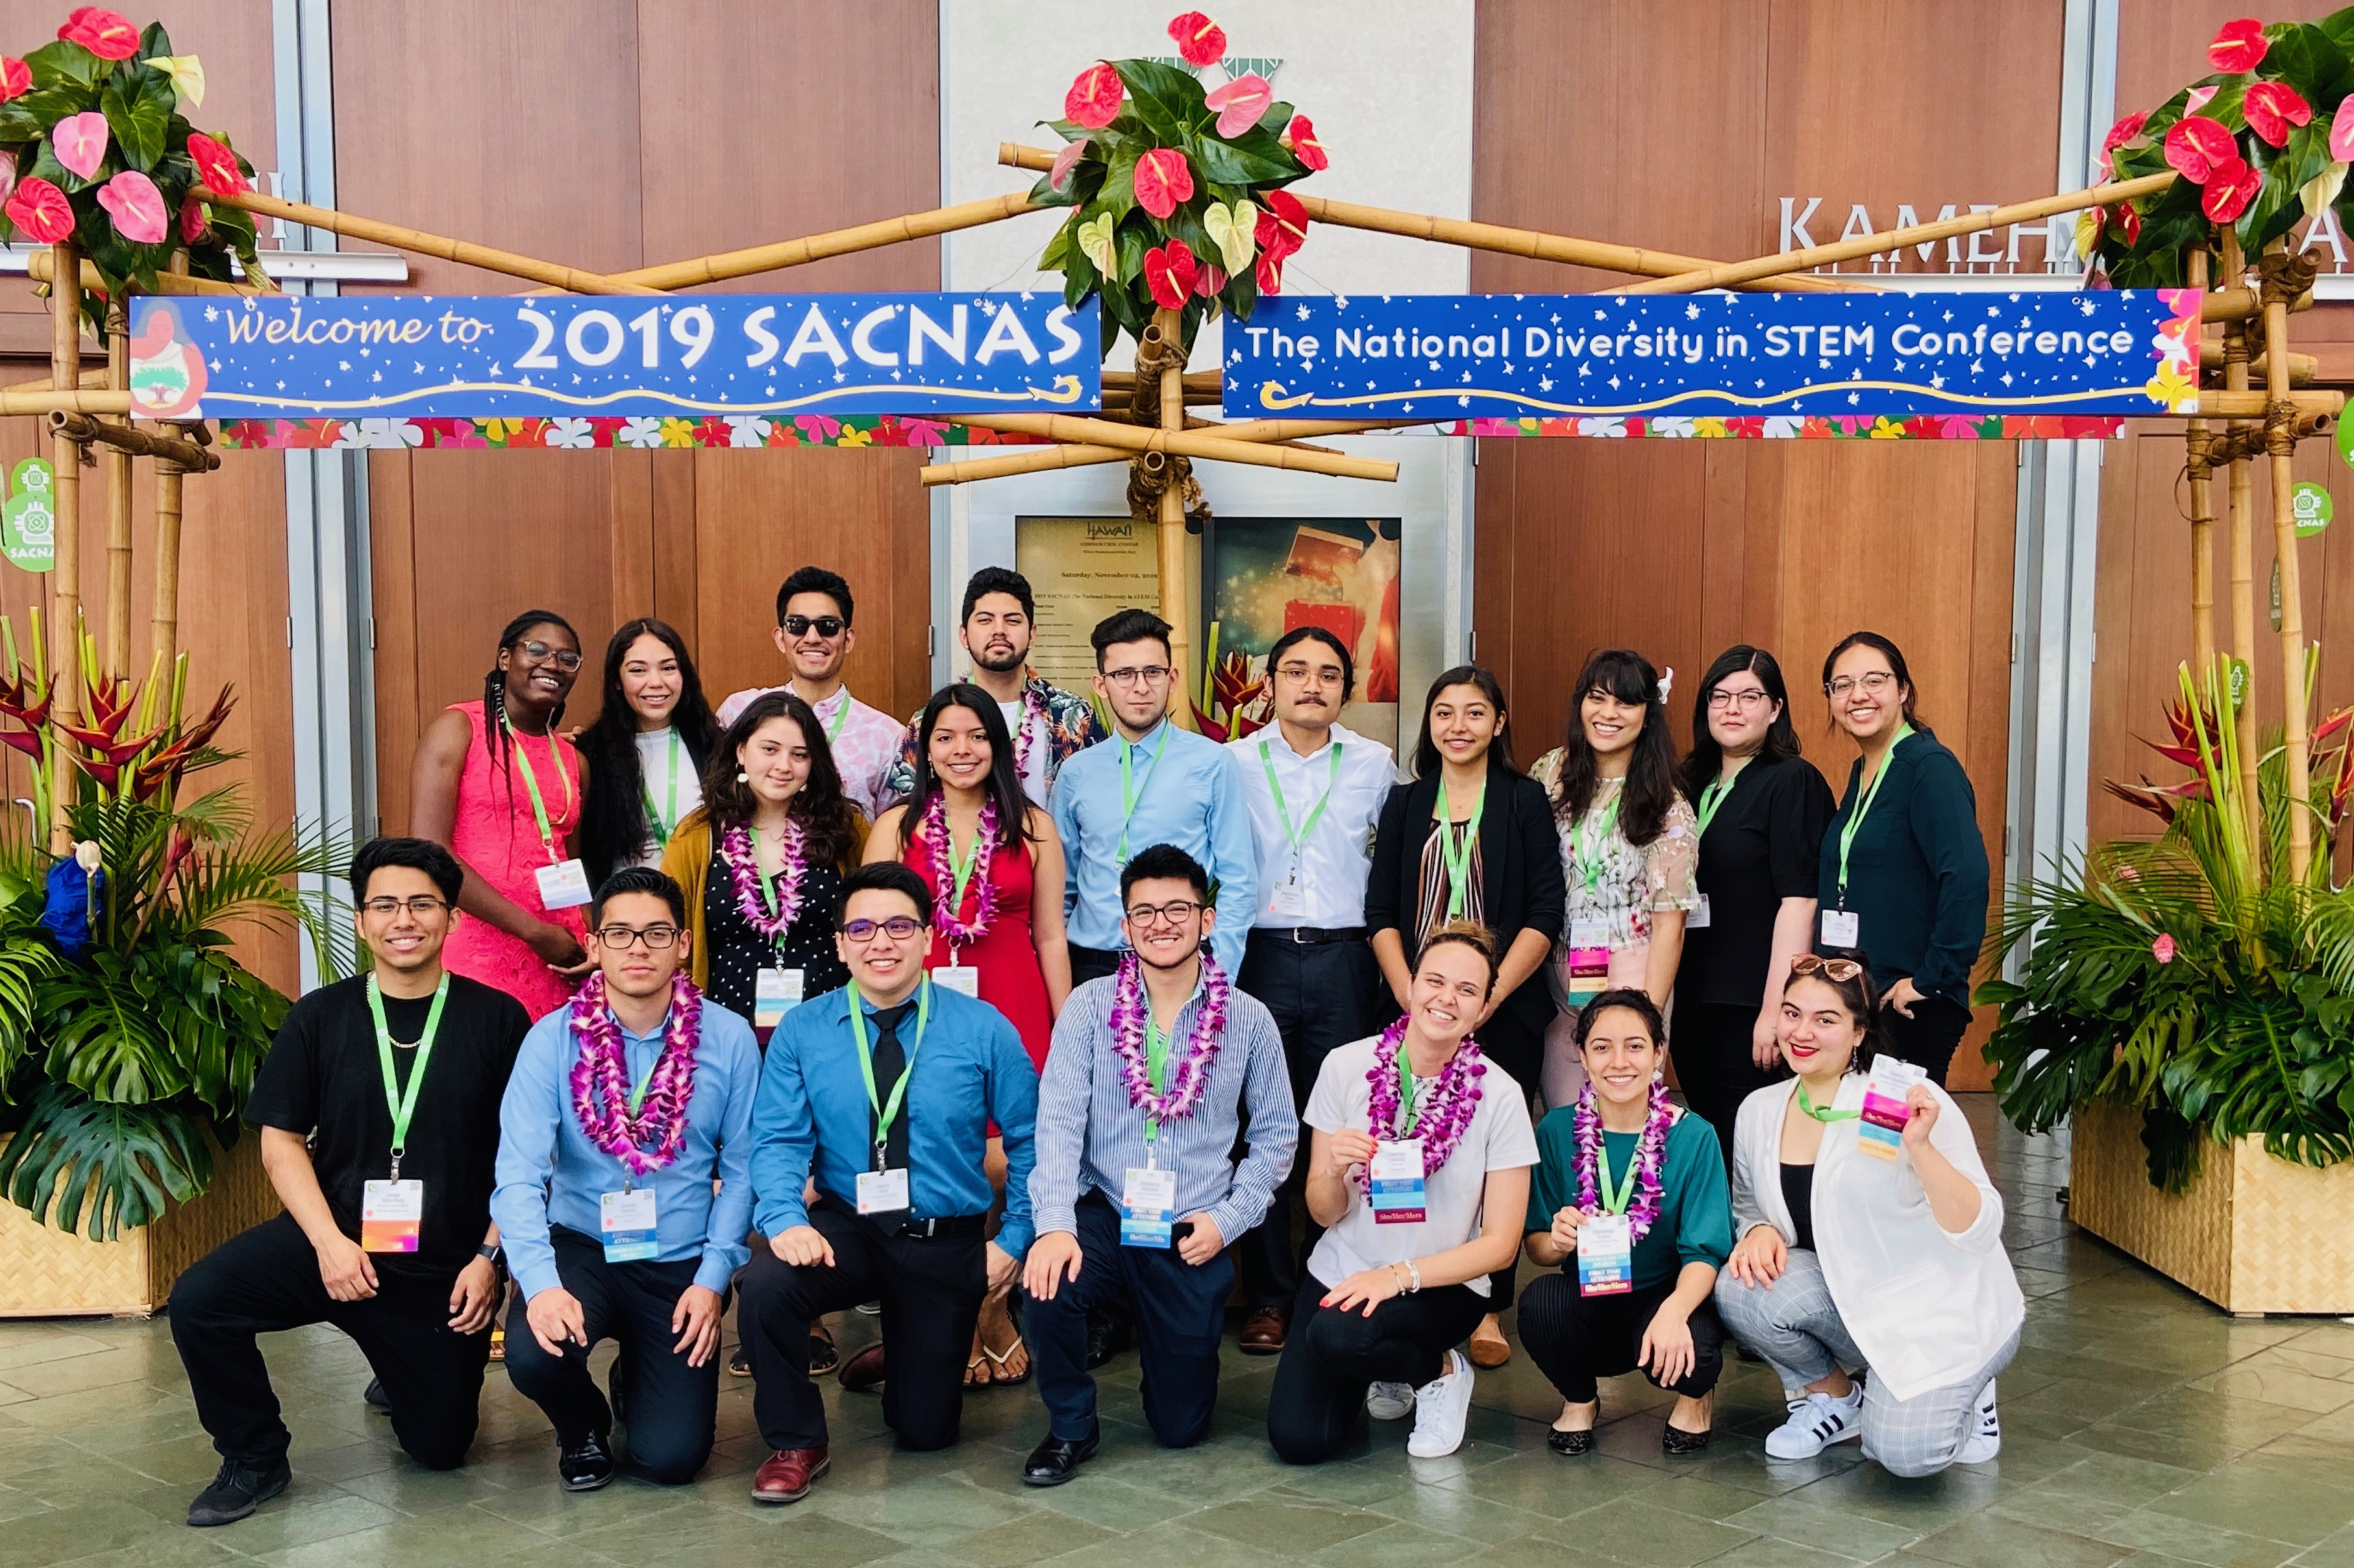 Nineteen people stand beneath a 2019 SACNAS banner wearing leis